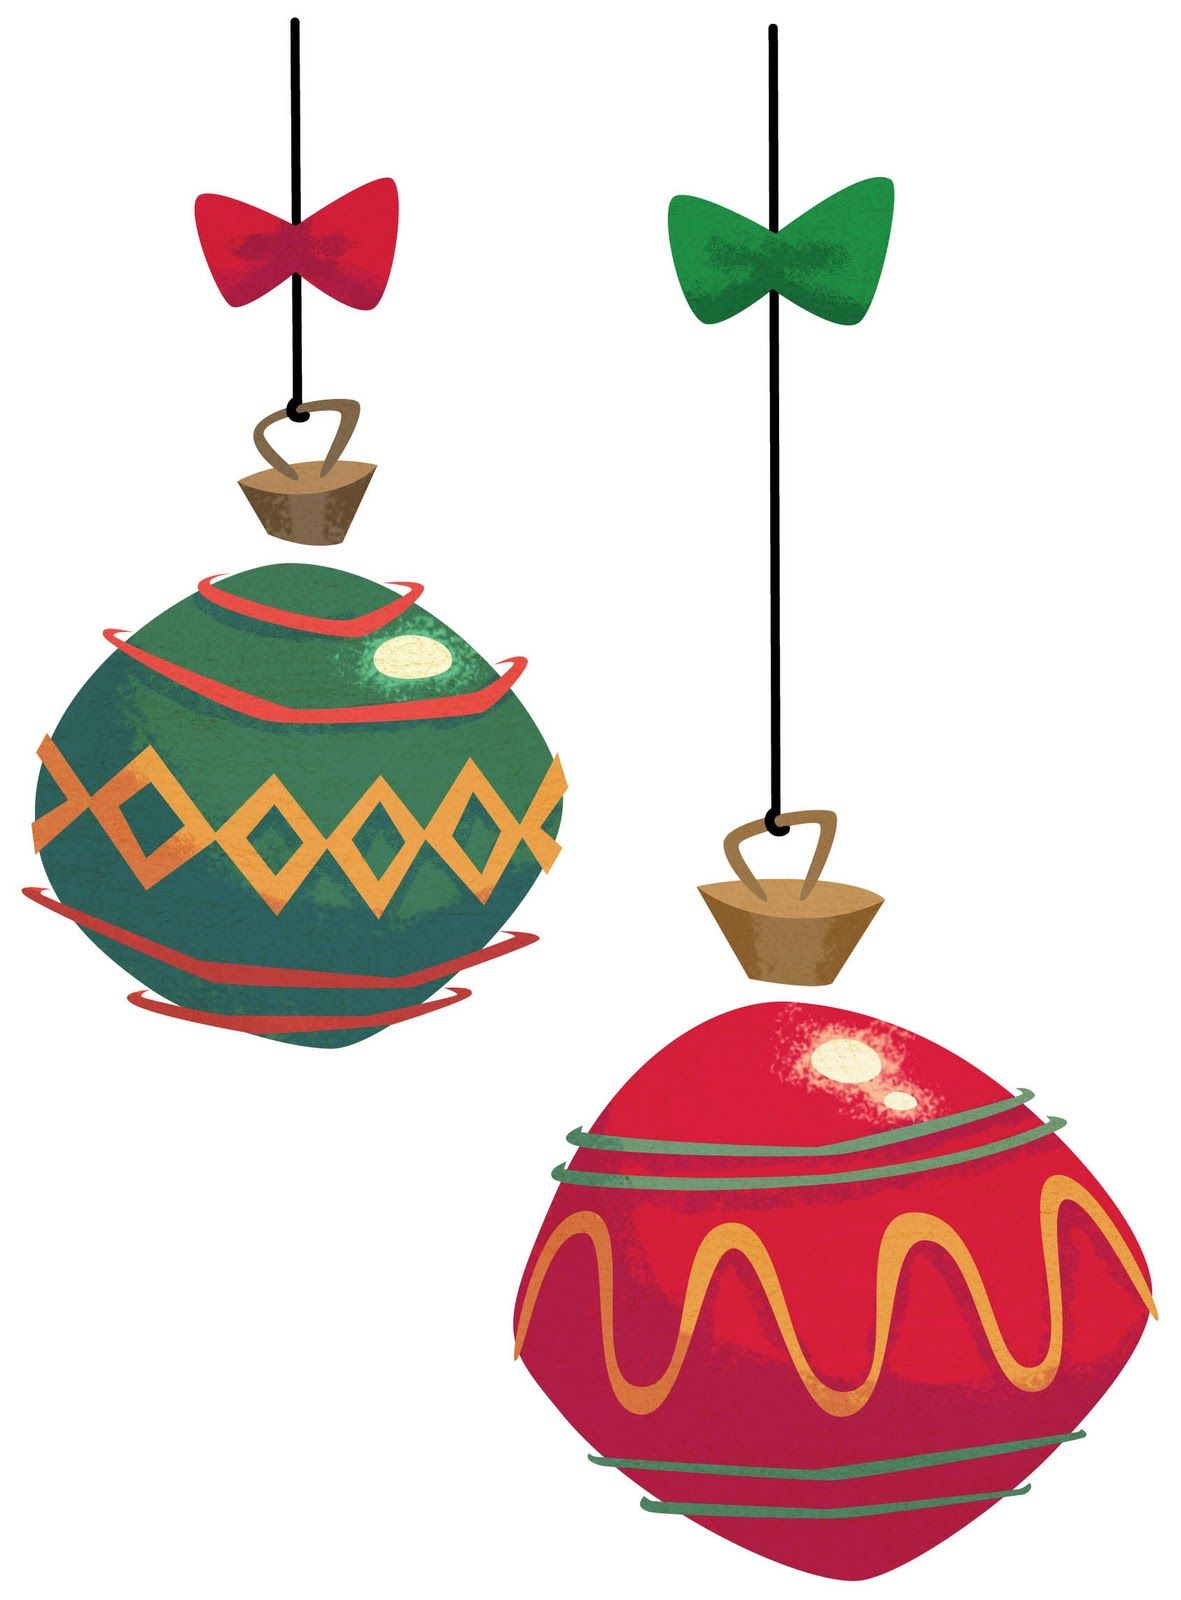 special christmas and new years eve packages available description rh pinterest com Vintage Merry Christmas Clip Art Vintage Christmas Cards Clip Art